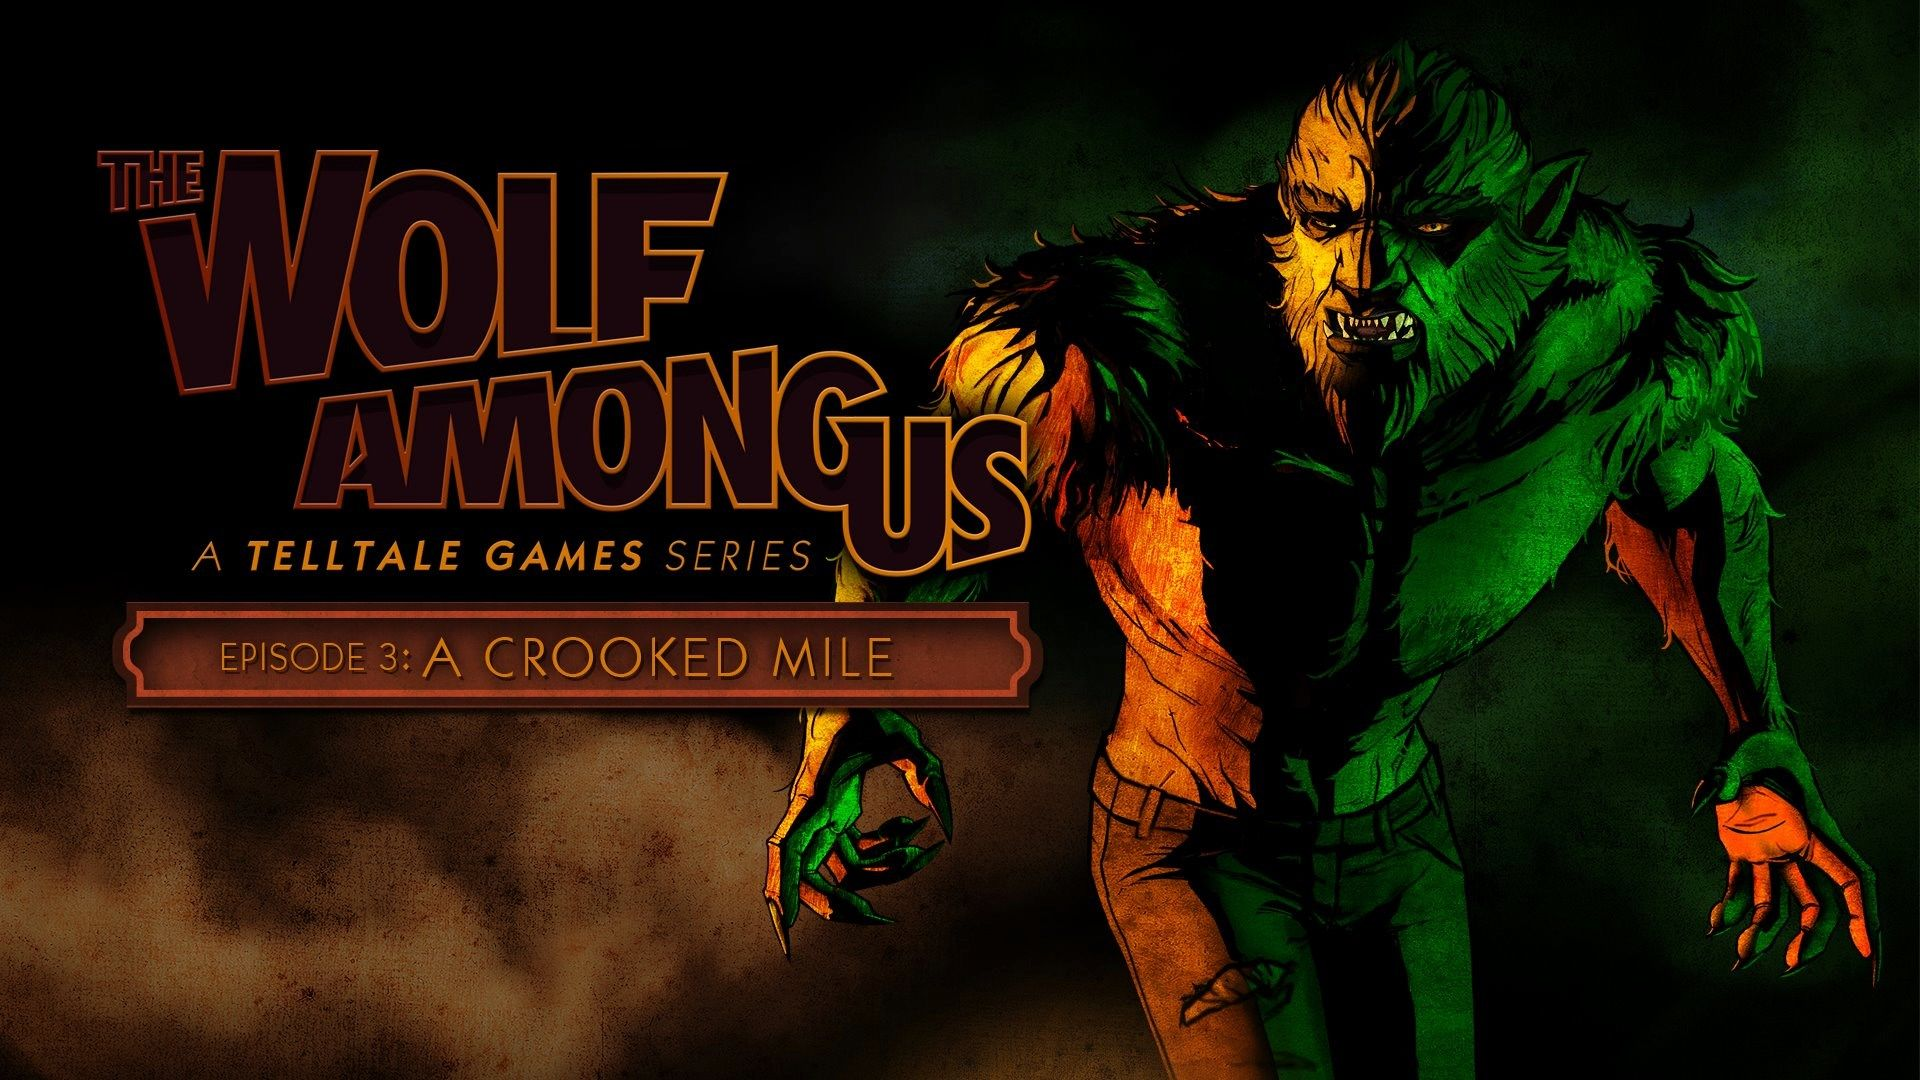 1920x1080 The Wolf Among Us Game Wallpaper